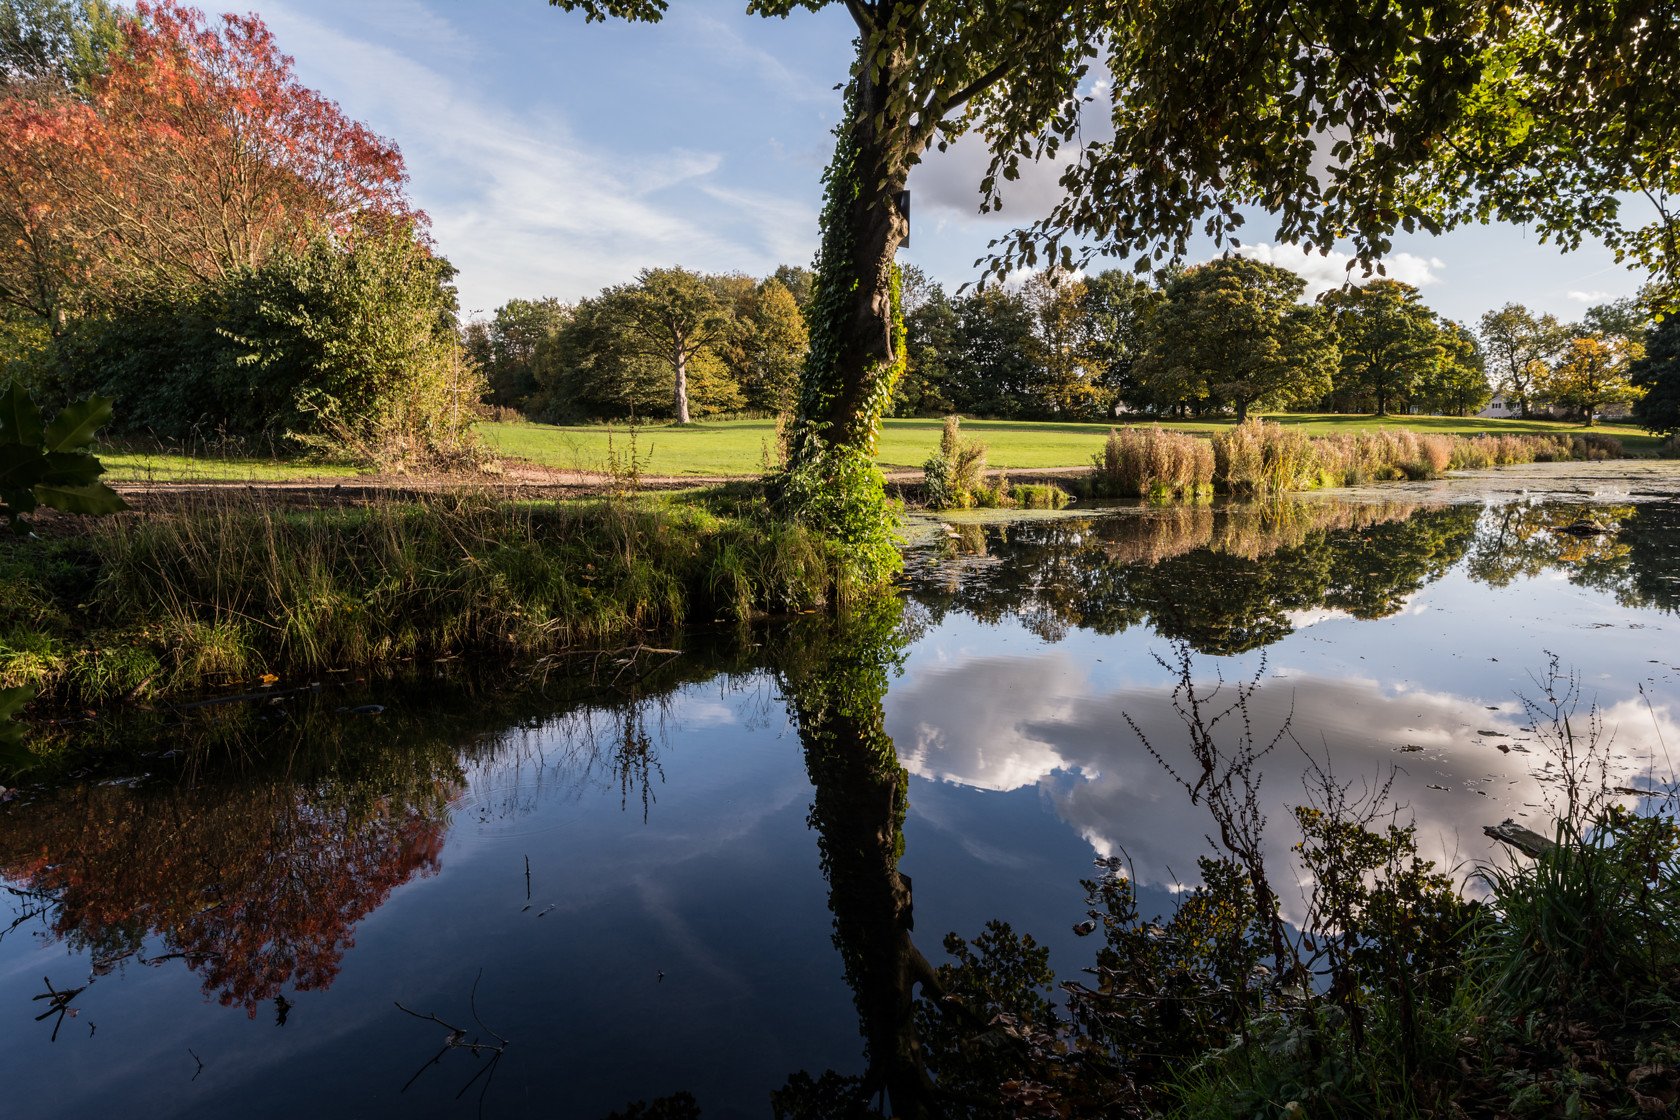 summer reflections, nunroyd park (ref av 121) 